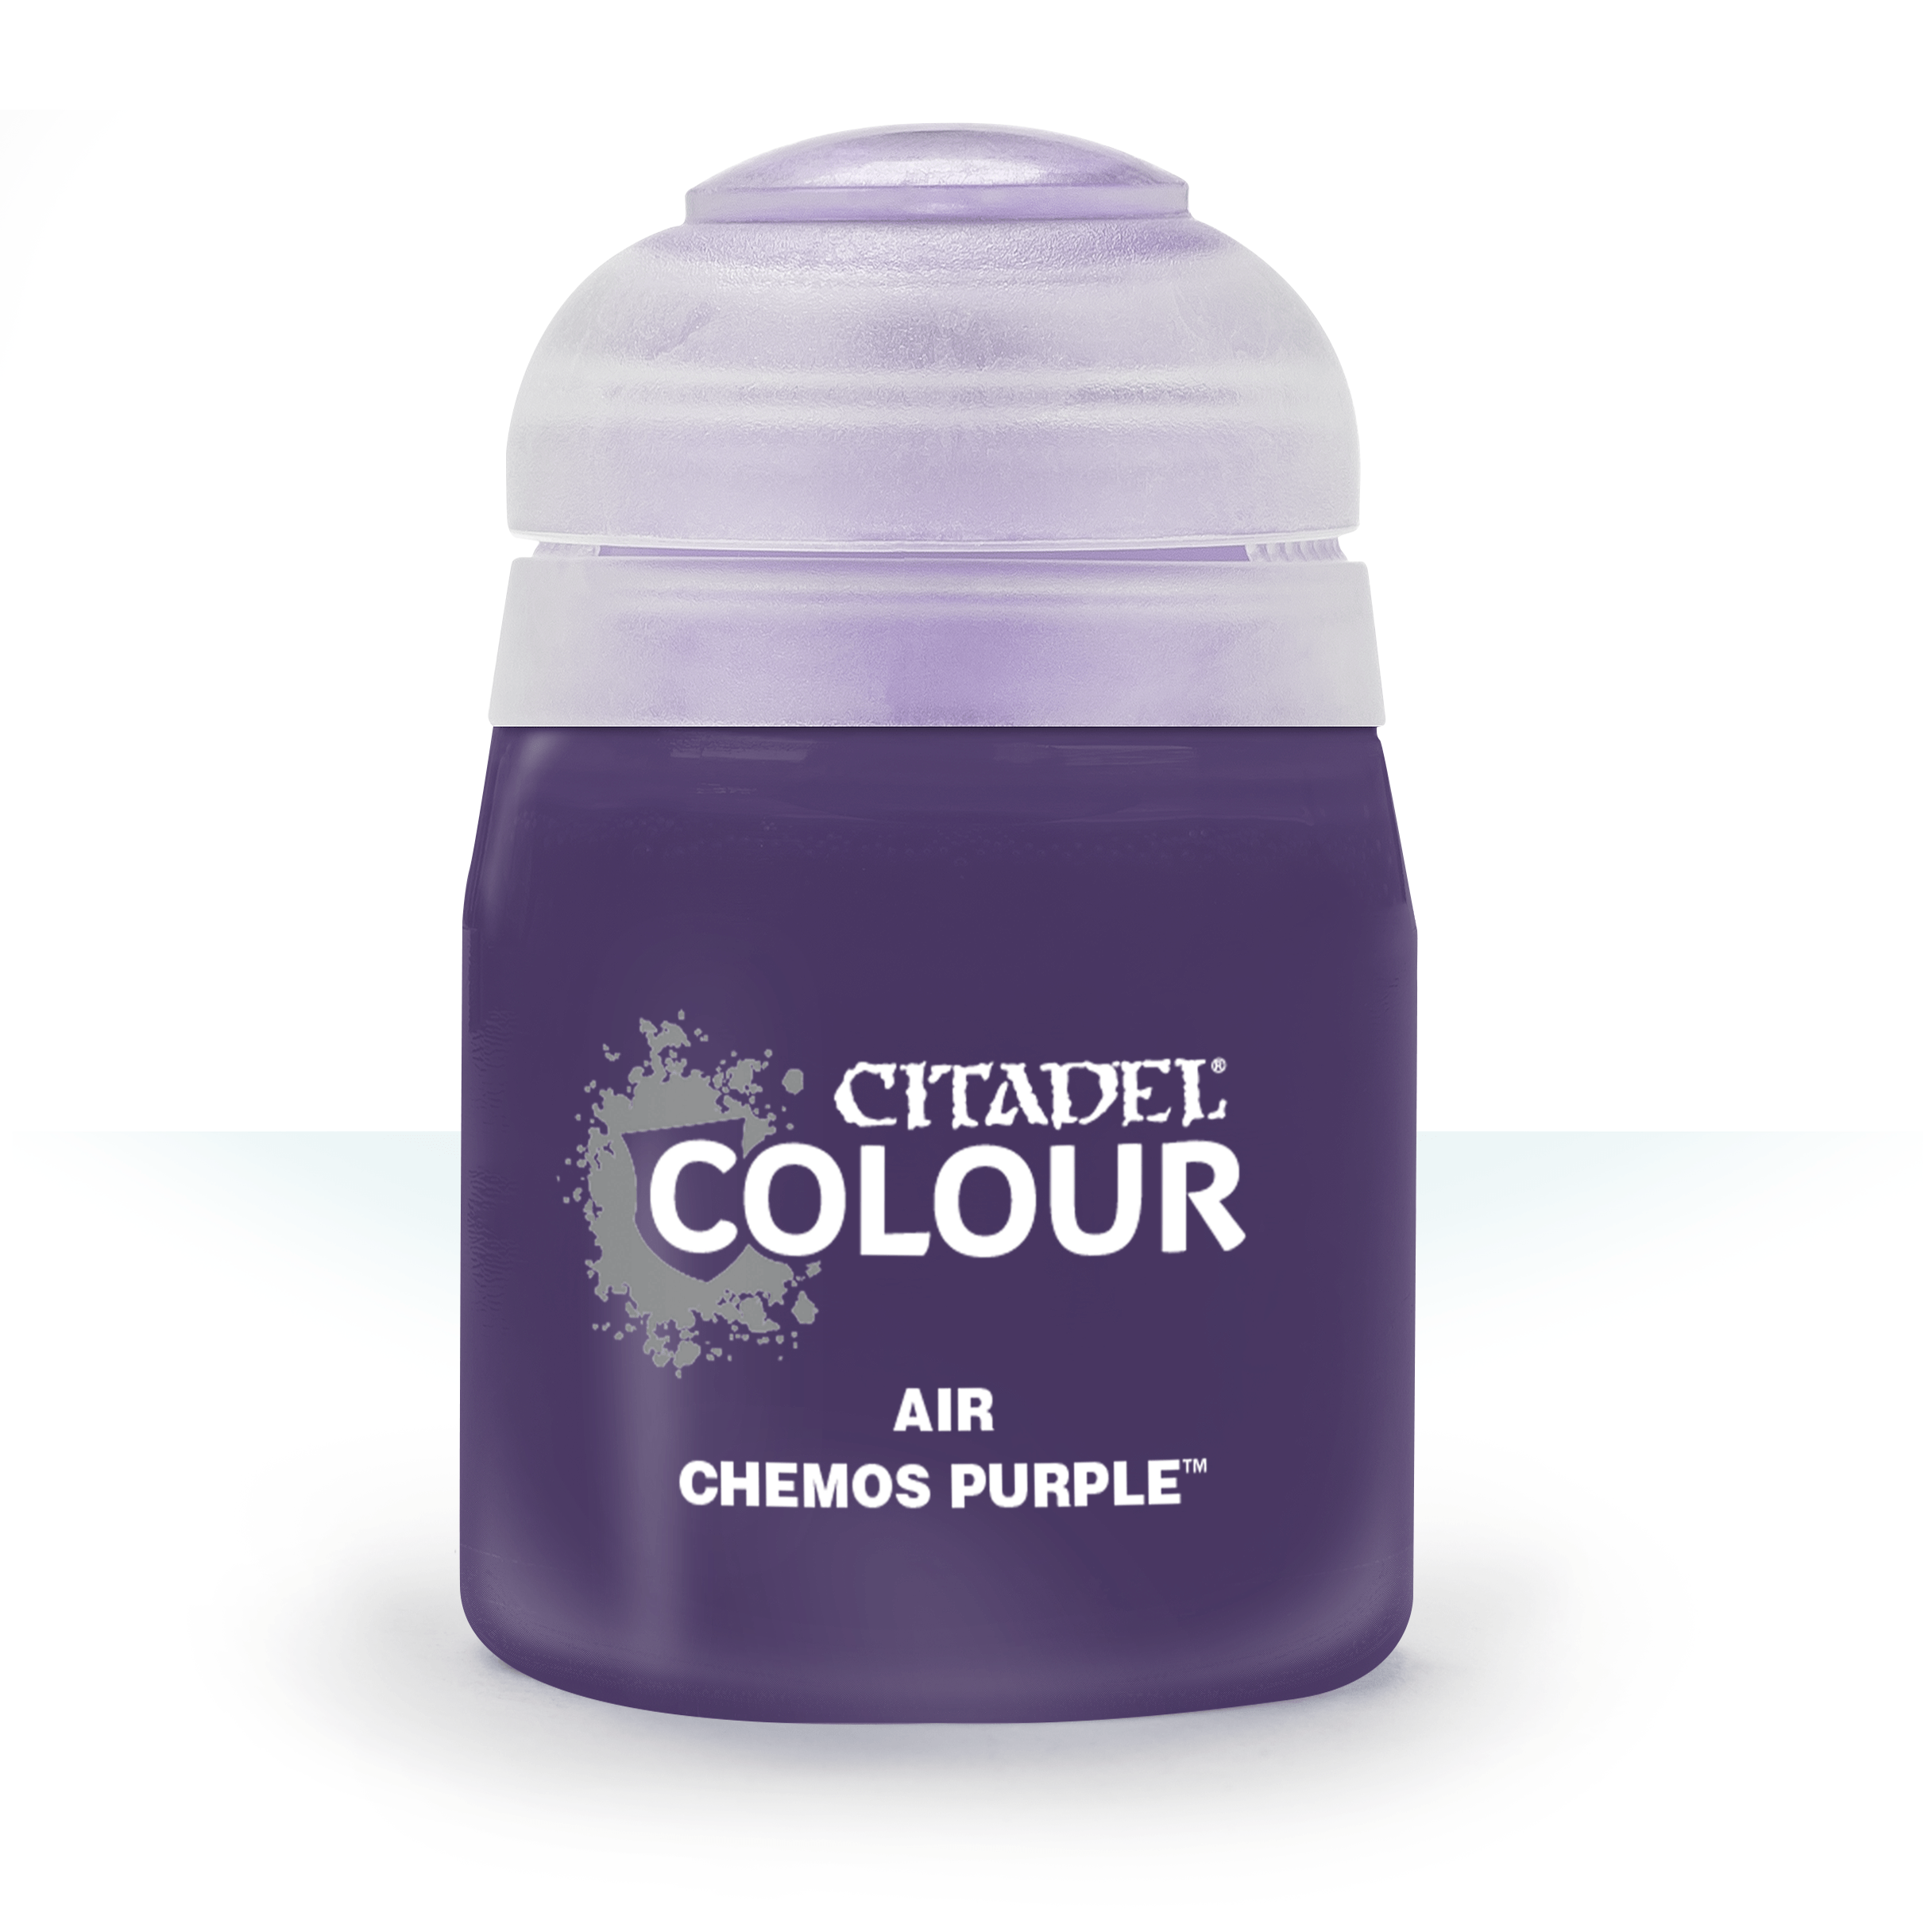 Citadel Airbrush Paints: Chemos Purple